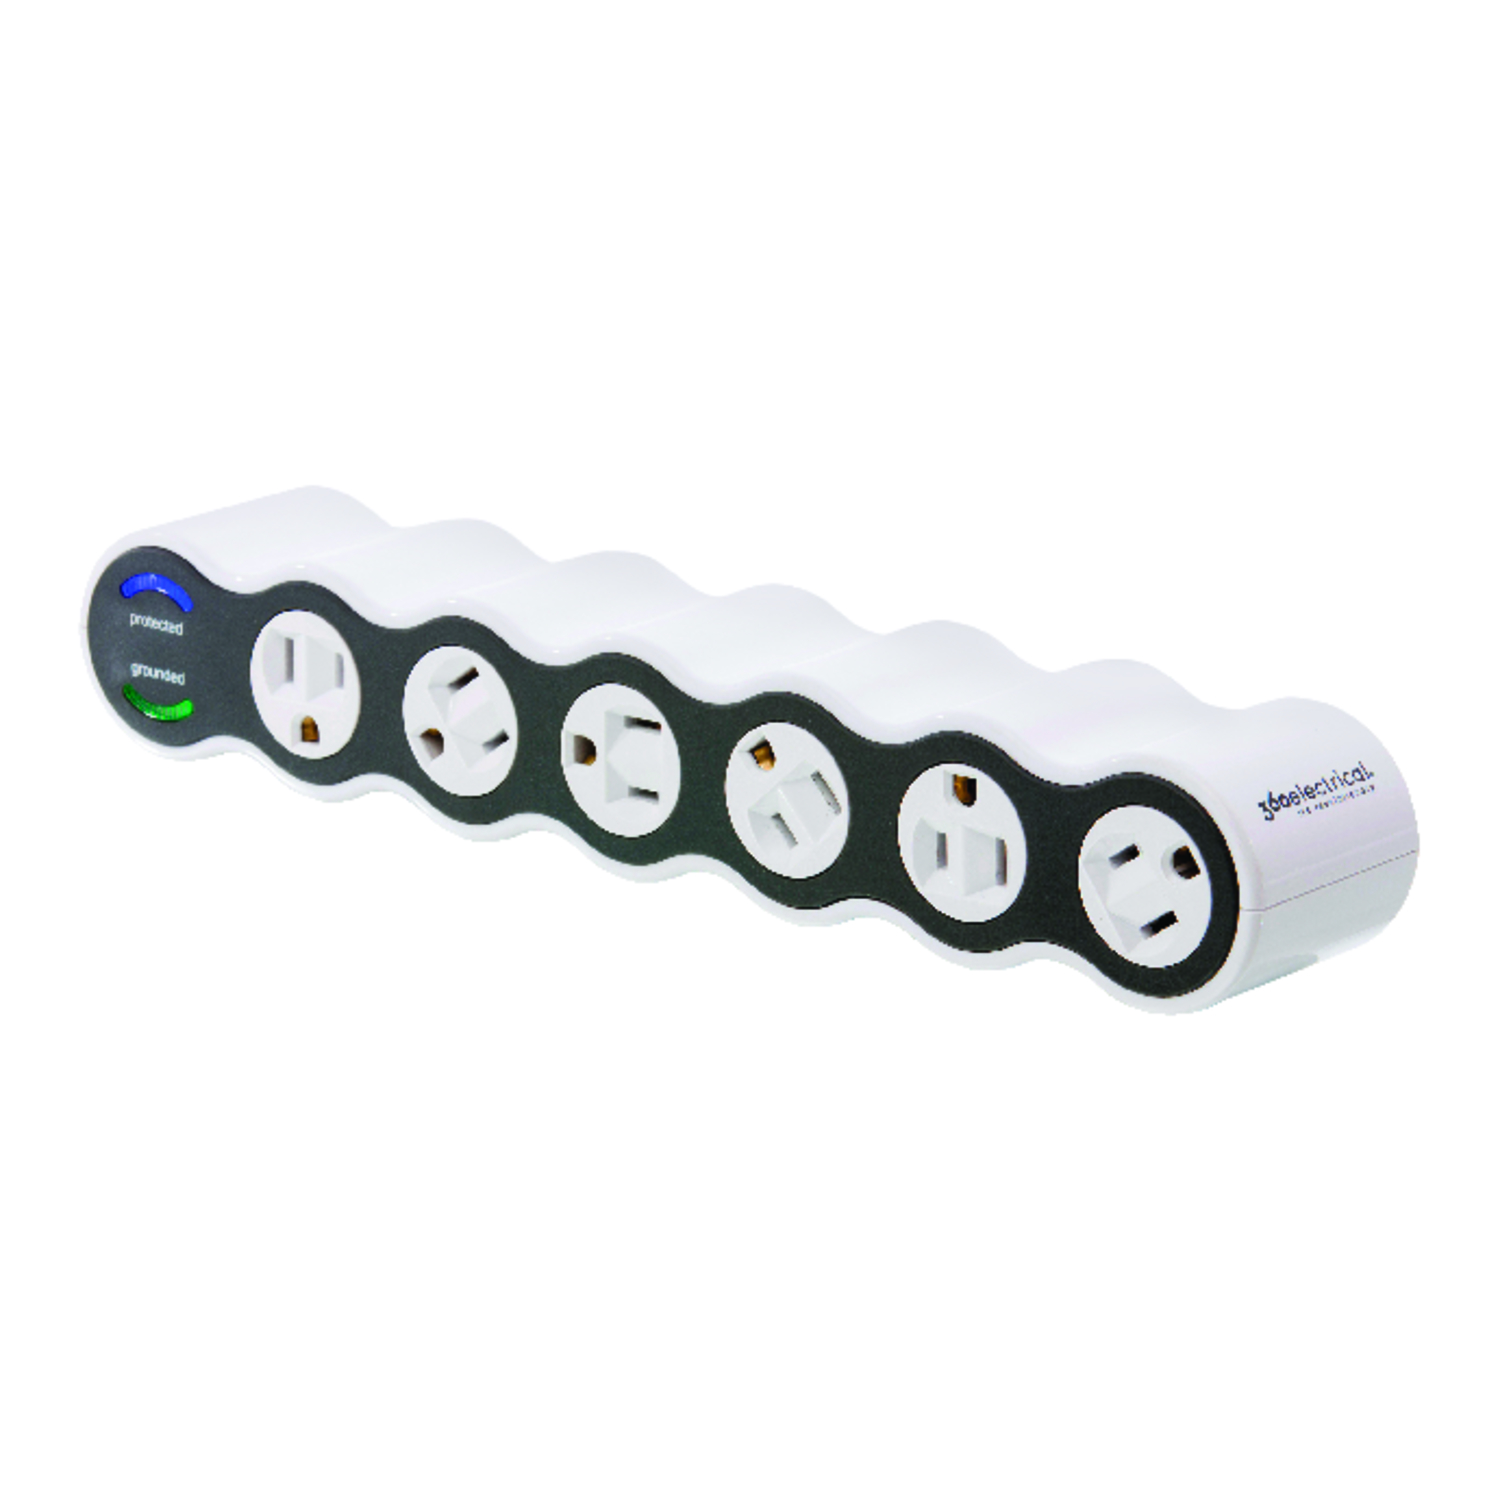 360 Electrical Surge Protector Six Tap 15 Amp 120 volts 1,800 watts  1,080 J  White/black 6 4 ft.